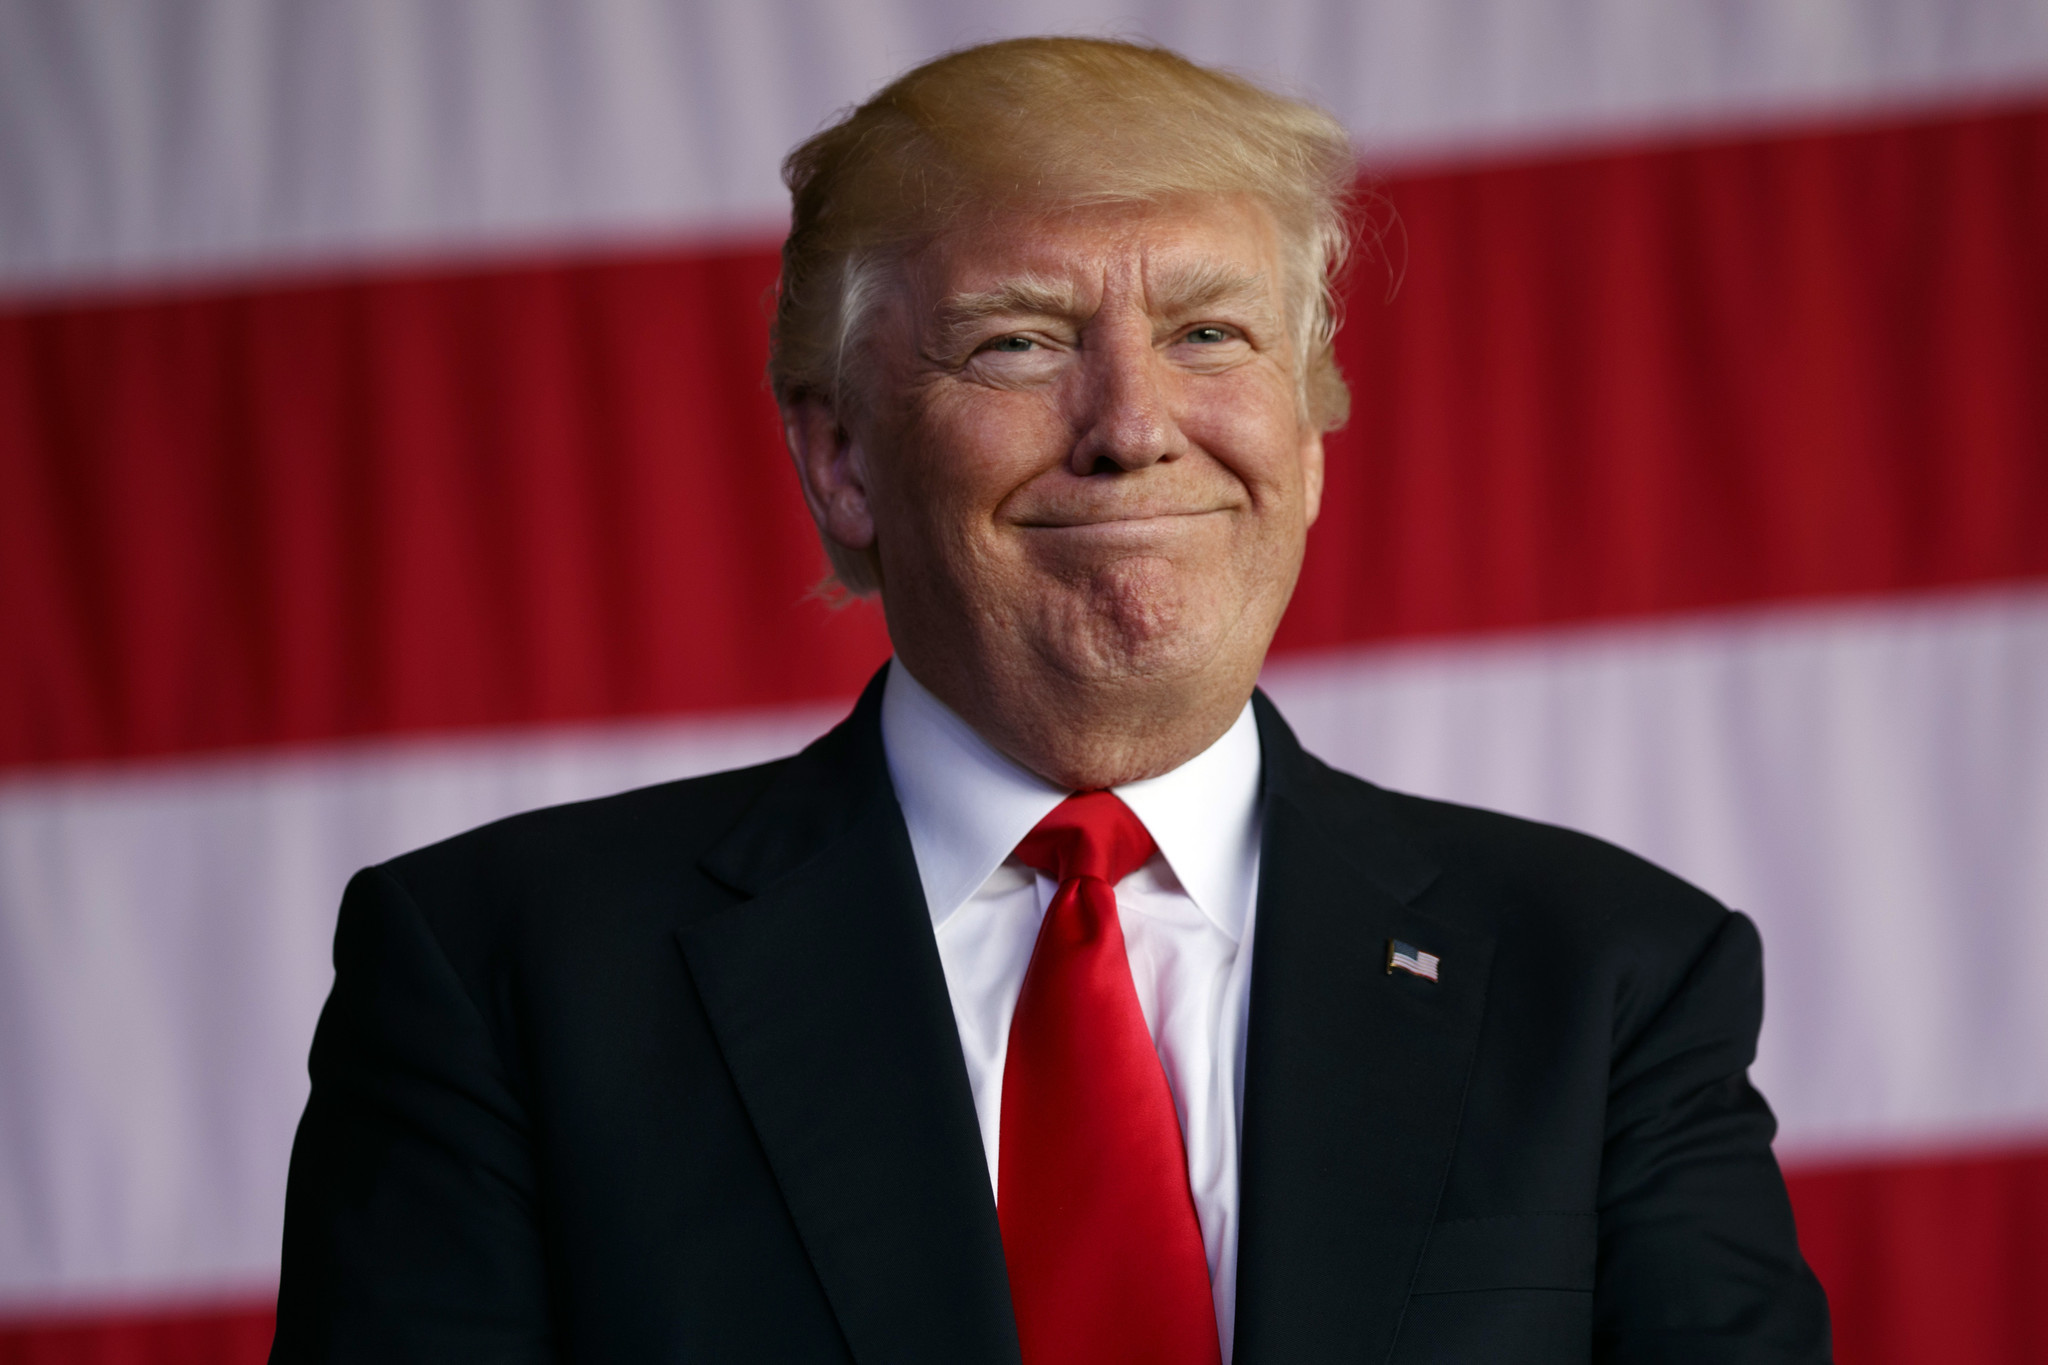 President Trump Coming To Alabama In Support of Luther Strange